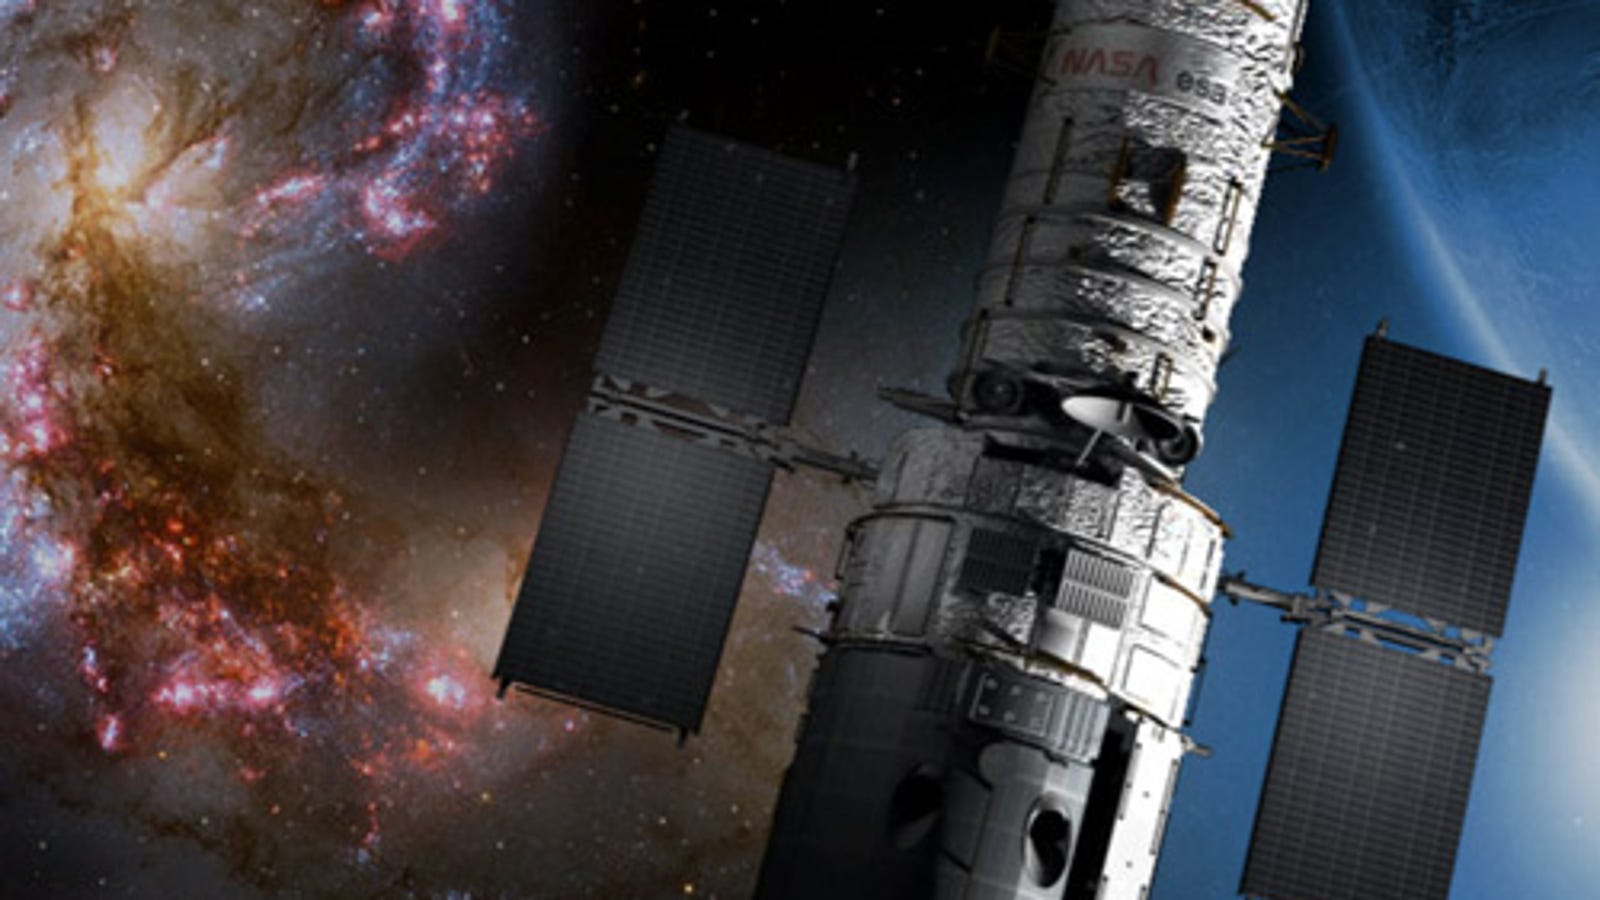 Hubble 3D Review: A Gift From NASA to Us